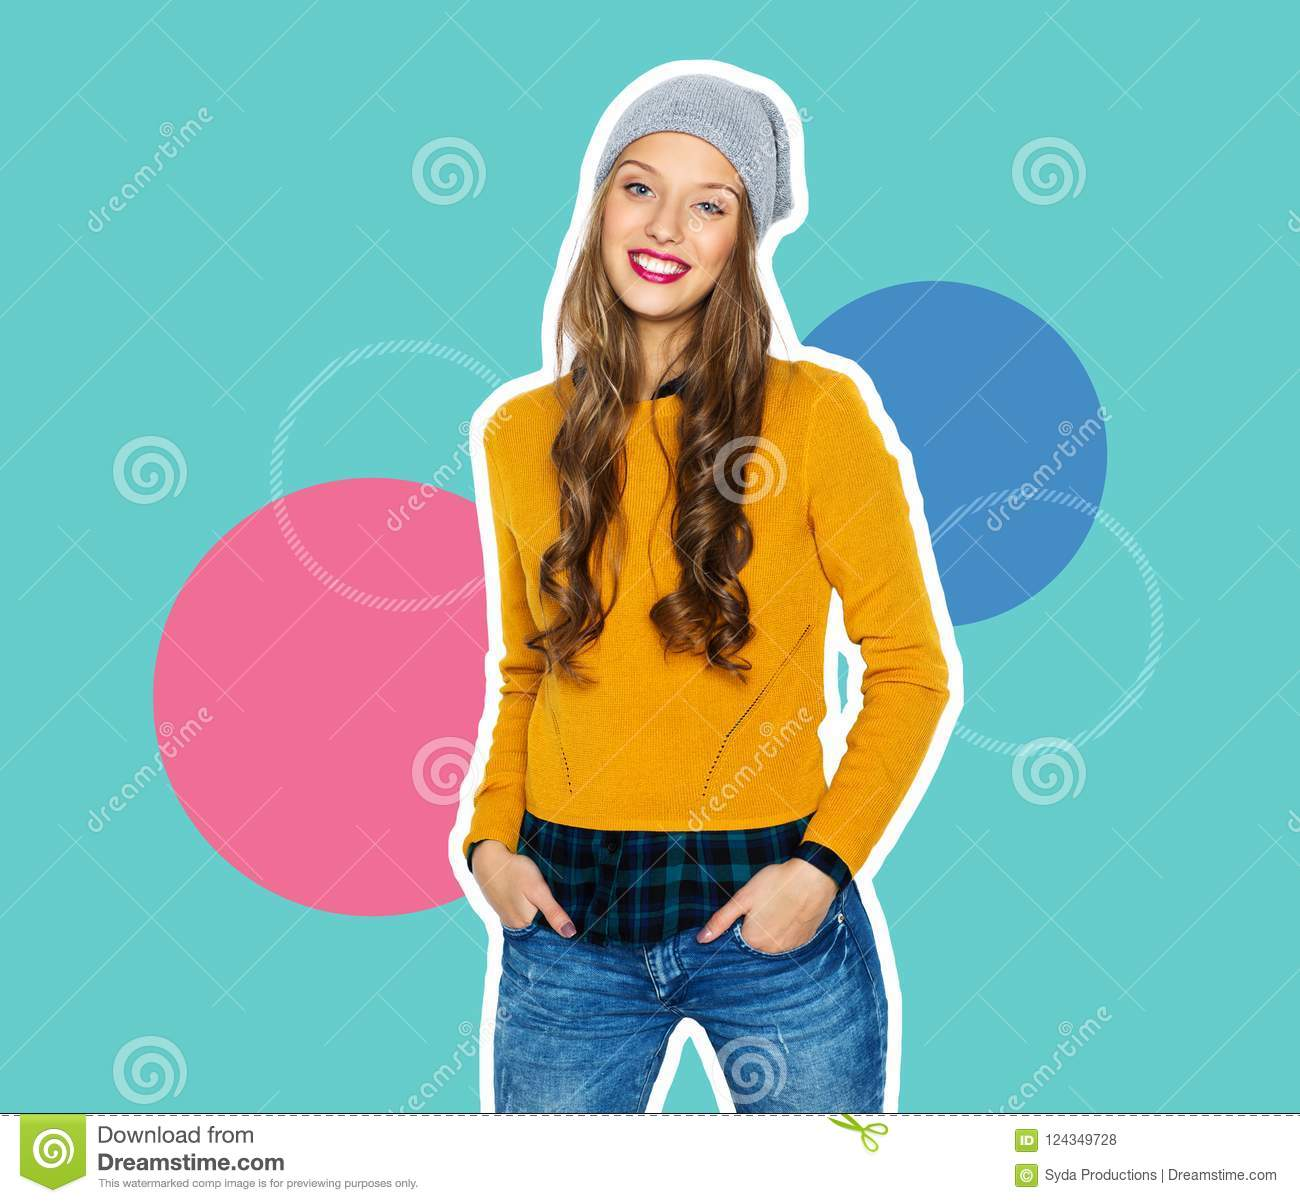 7d002c76f622 People, style and fashion concept - magazine style collage of happy teenage  girl in casual clothes and hipster hat on colorful background